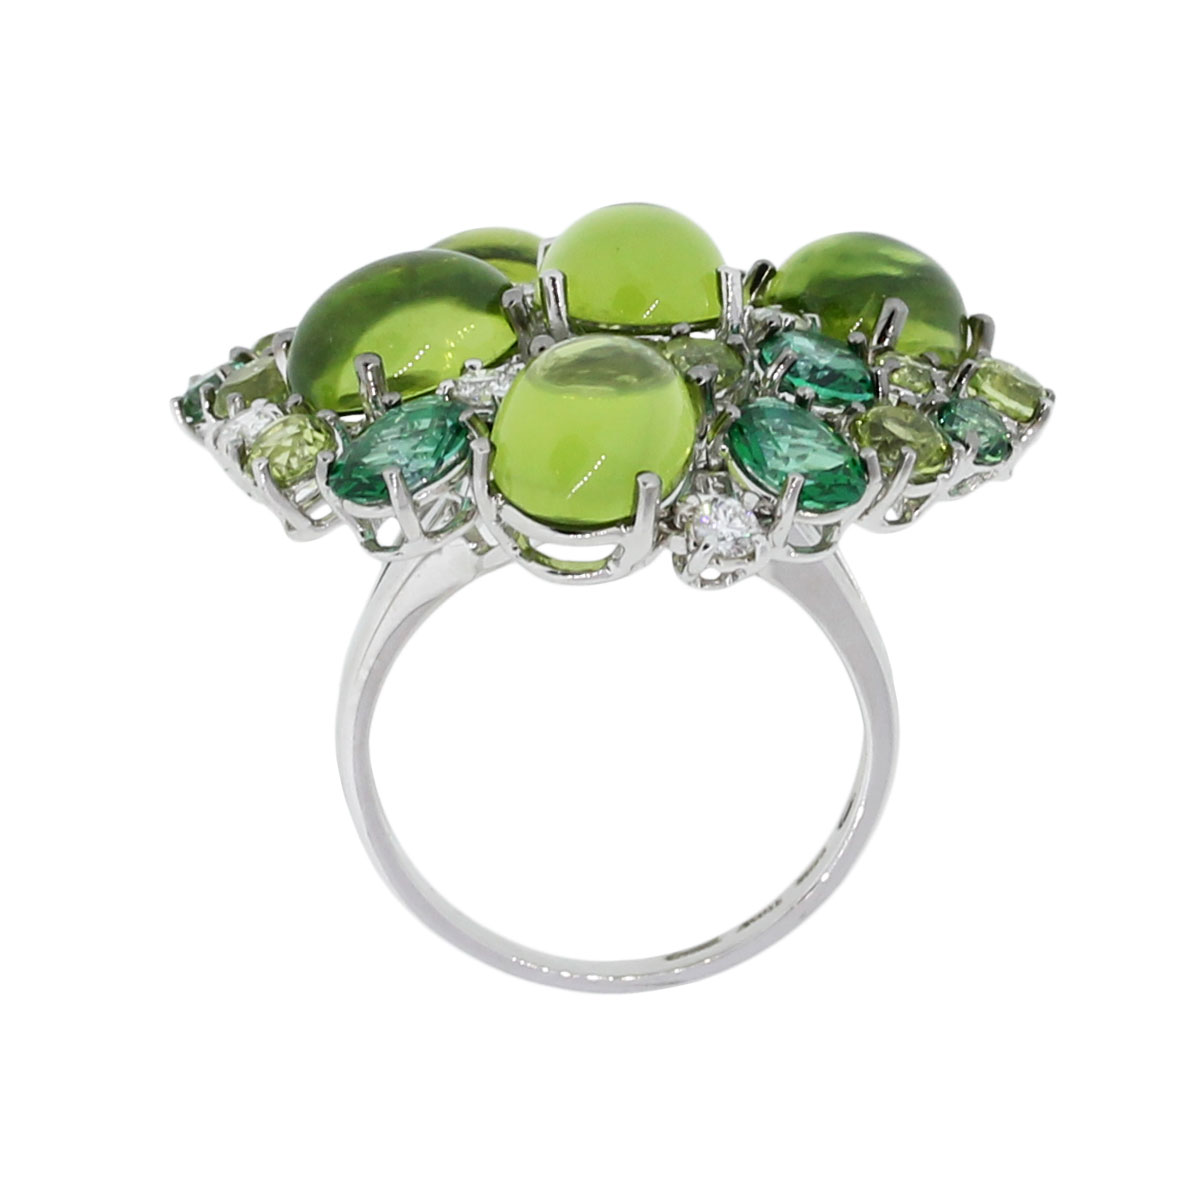 Roberto coin diamond green peridot ring